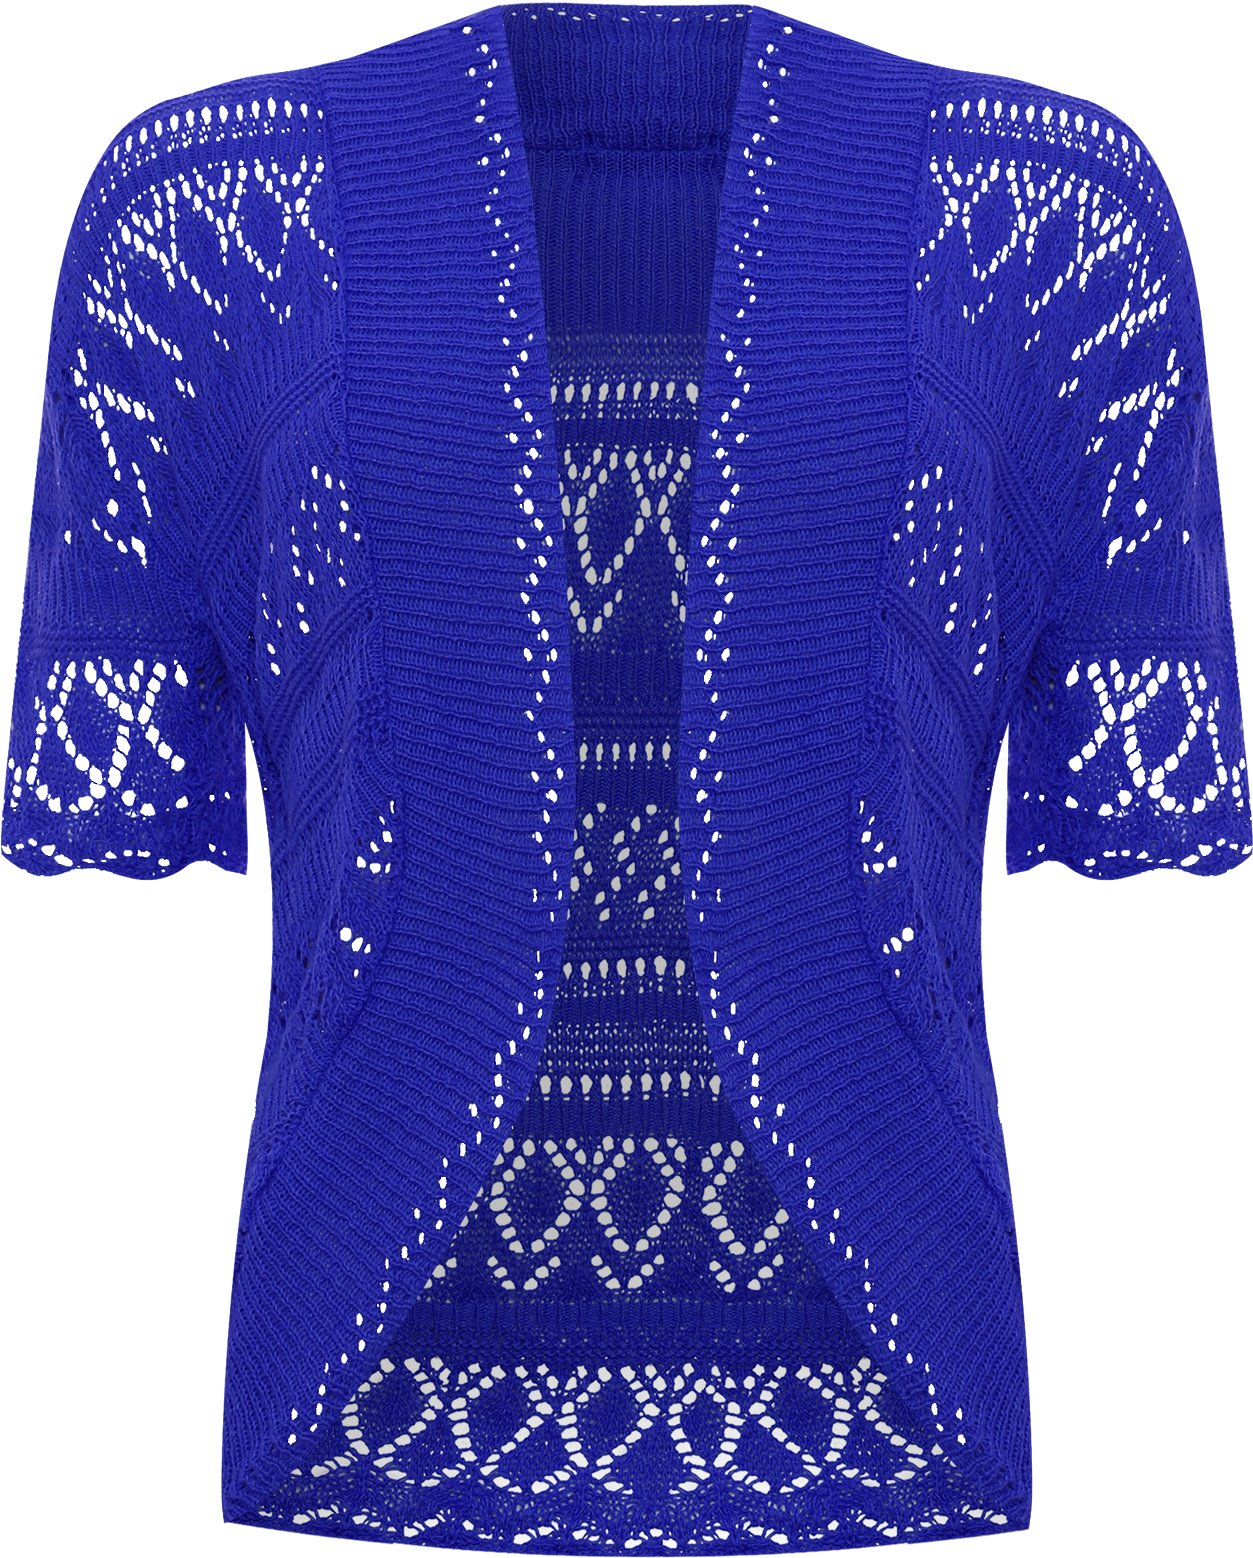 WearAll Women's Plus Size Crochet Knitted Short Sleeve Cardigan - Royal Blue - US 14-16 (UK 18-20)